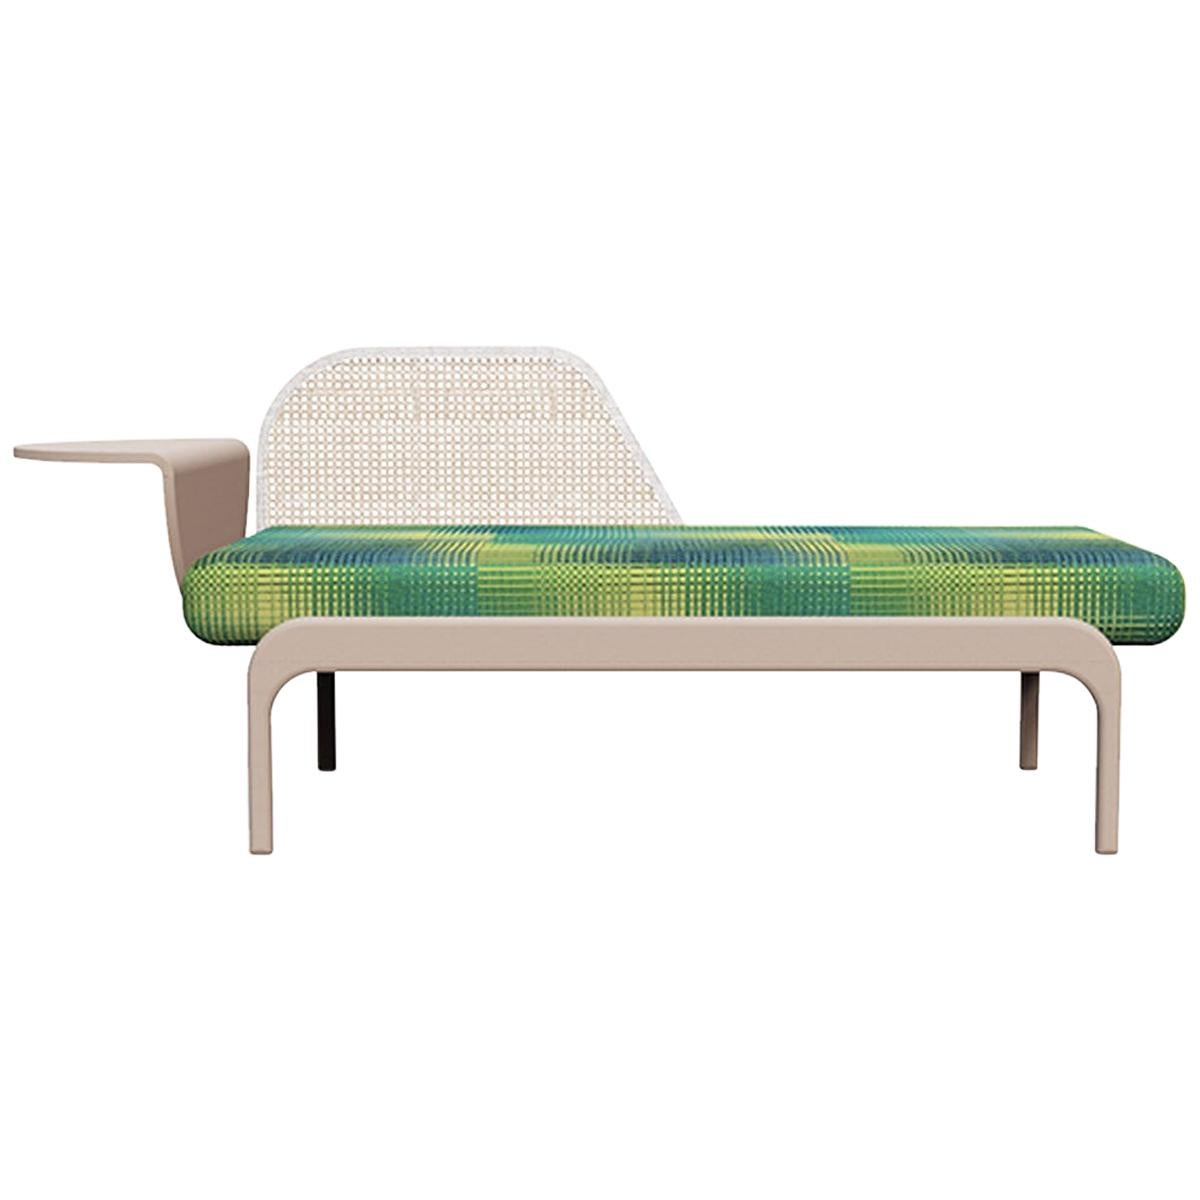 Minimalist Mid-Century Modern Style Solid Wood Bench Upholstered in Textile